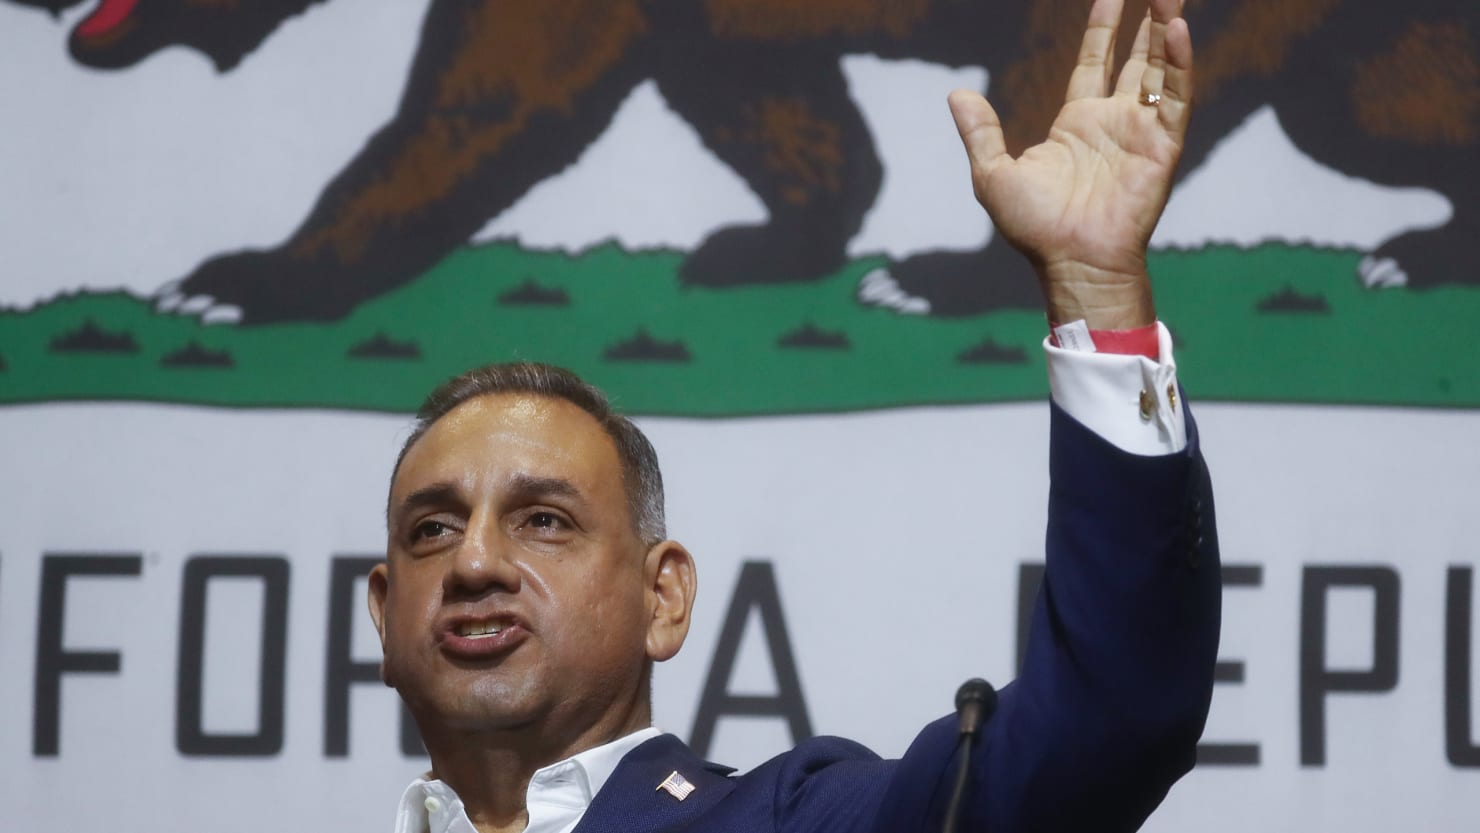 Democrat Gil Cisneros Wins GOP Seat in California, Completing Blue Wave in Orange County